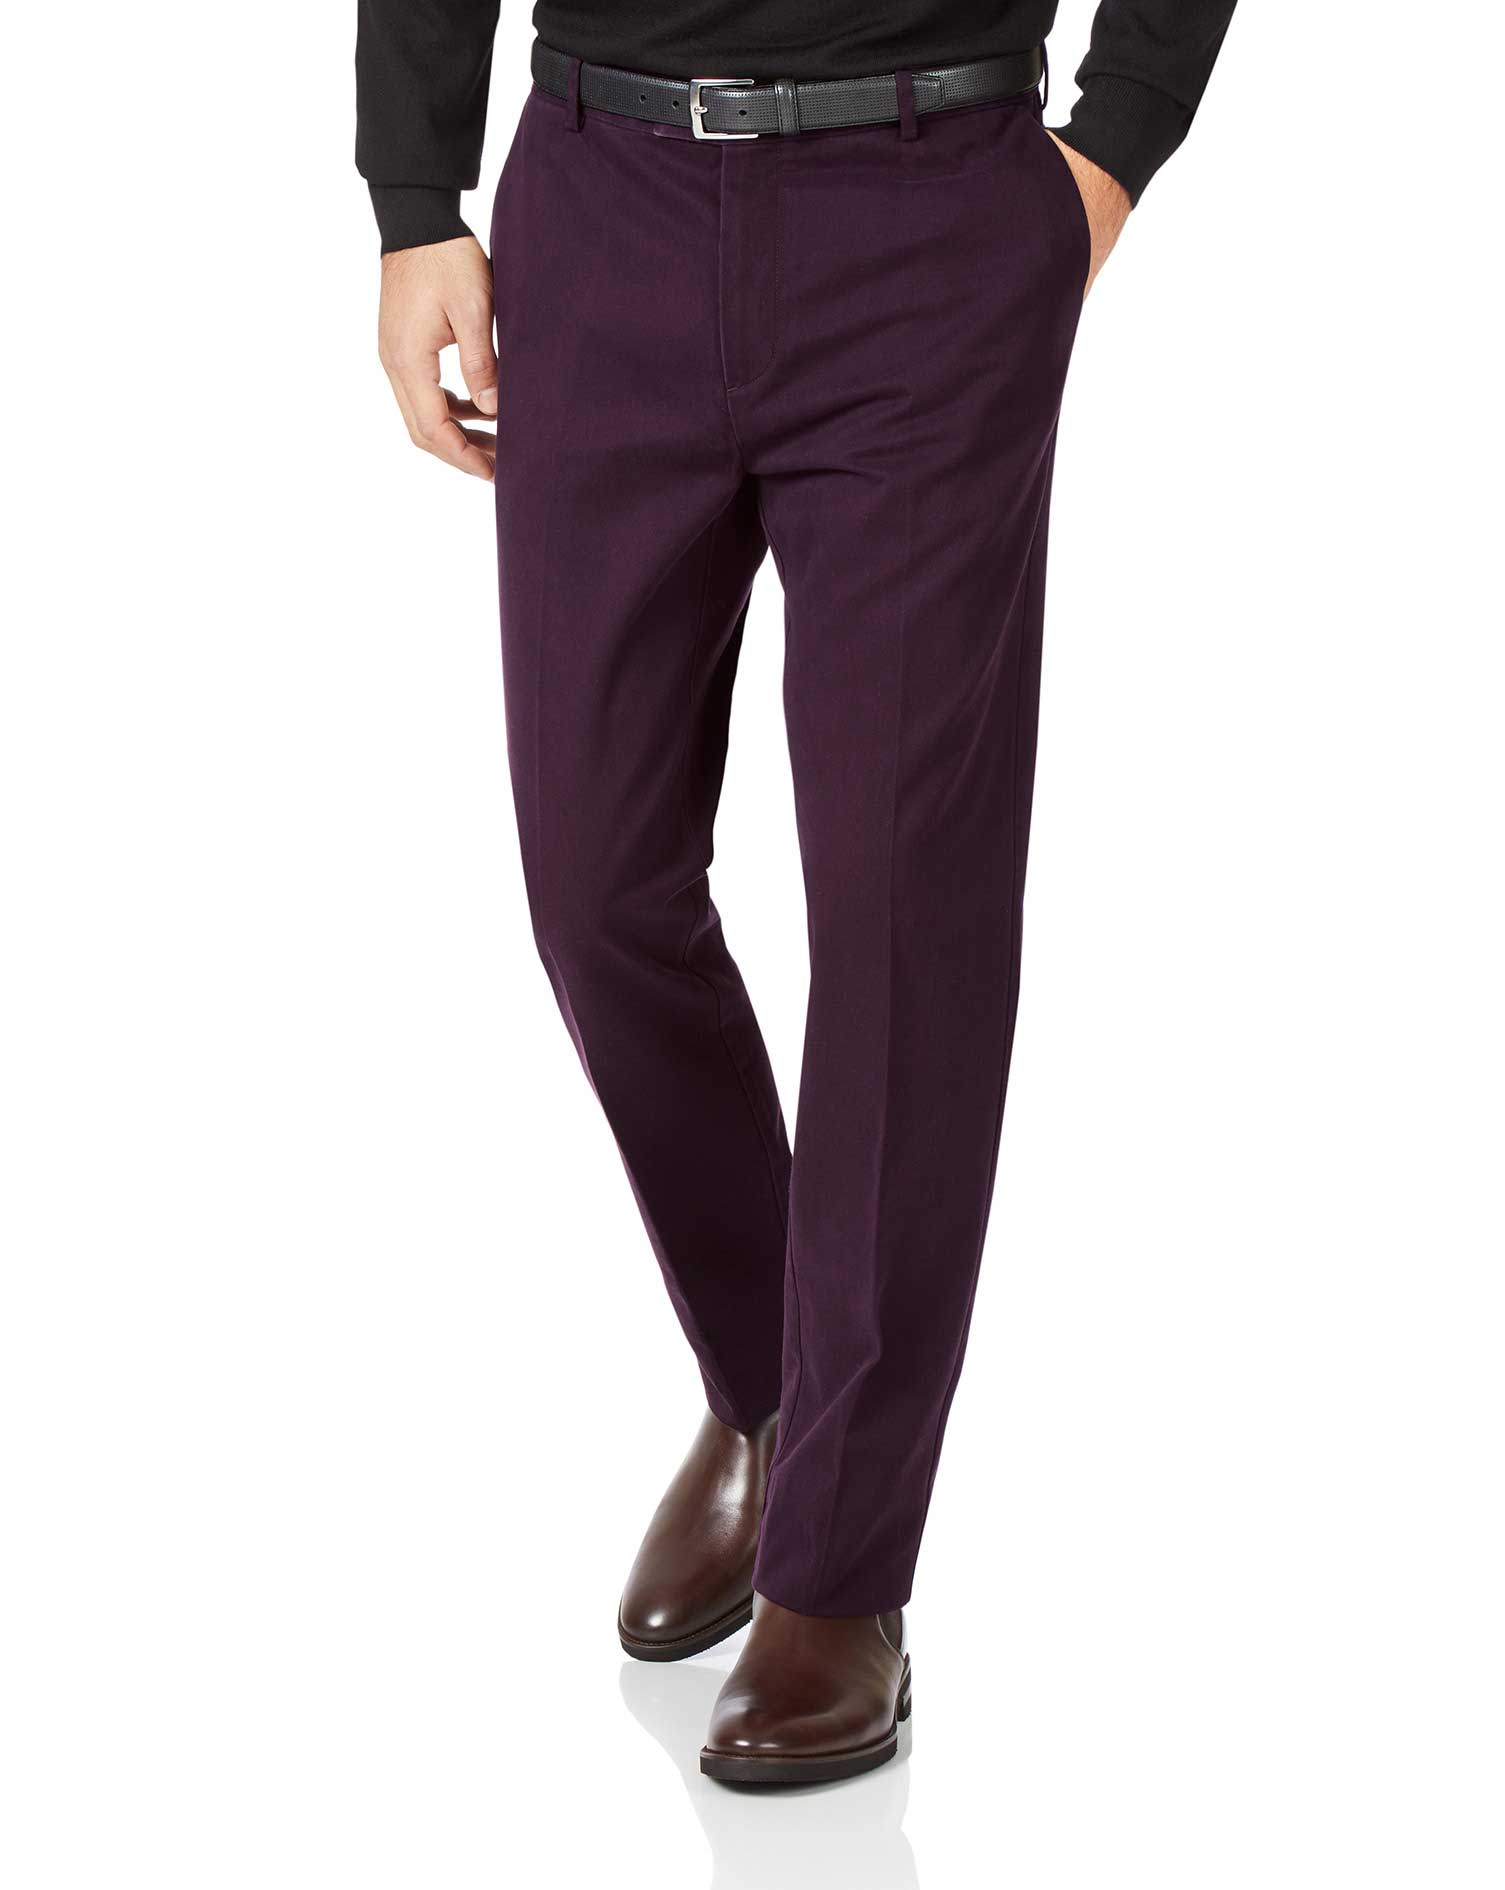 Aubergine Slim Fit Flat Front Non-Iron Cotton Chino Trousers Size W32 L38 by Charles Tyrwhitt